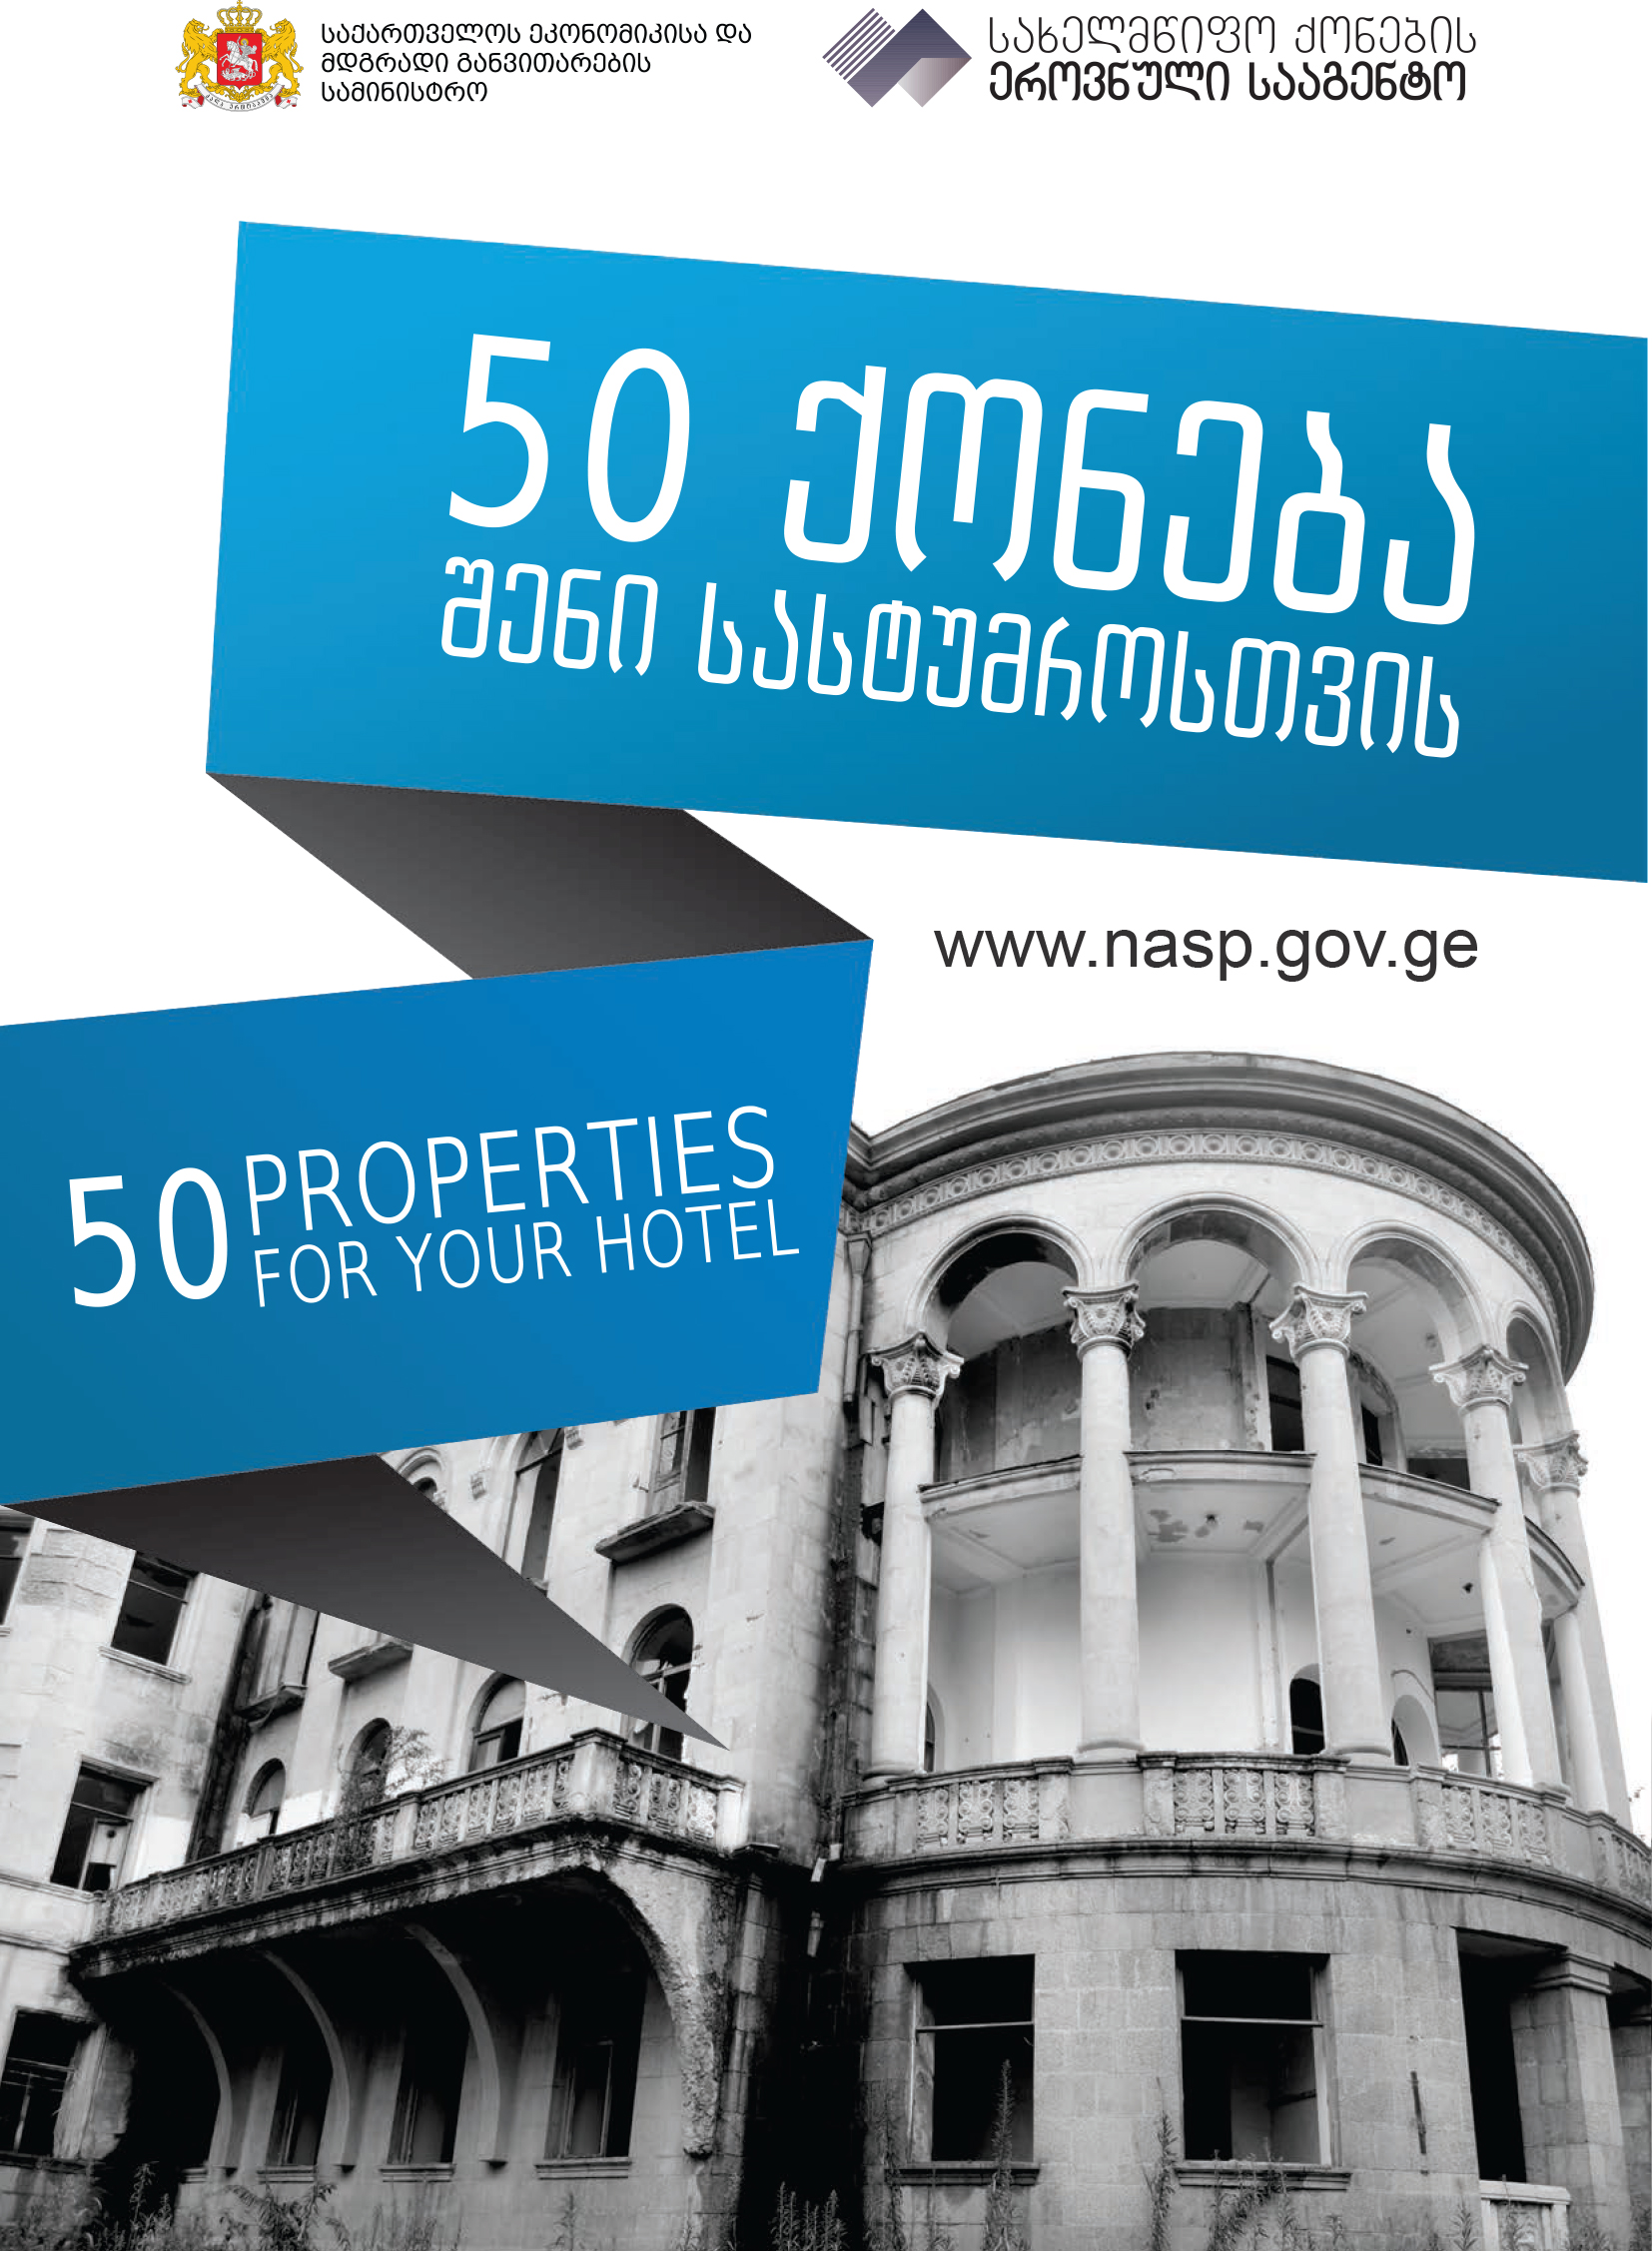 50 PROPERTY FOR YOUR HOTEL 1